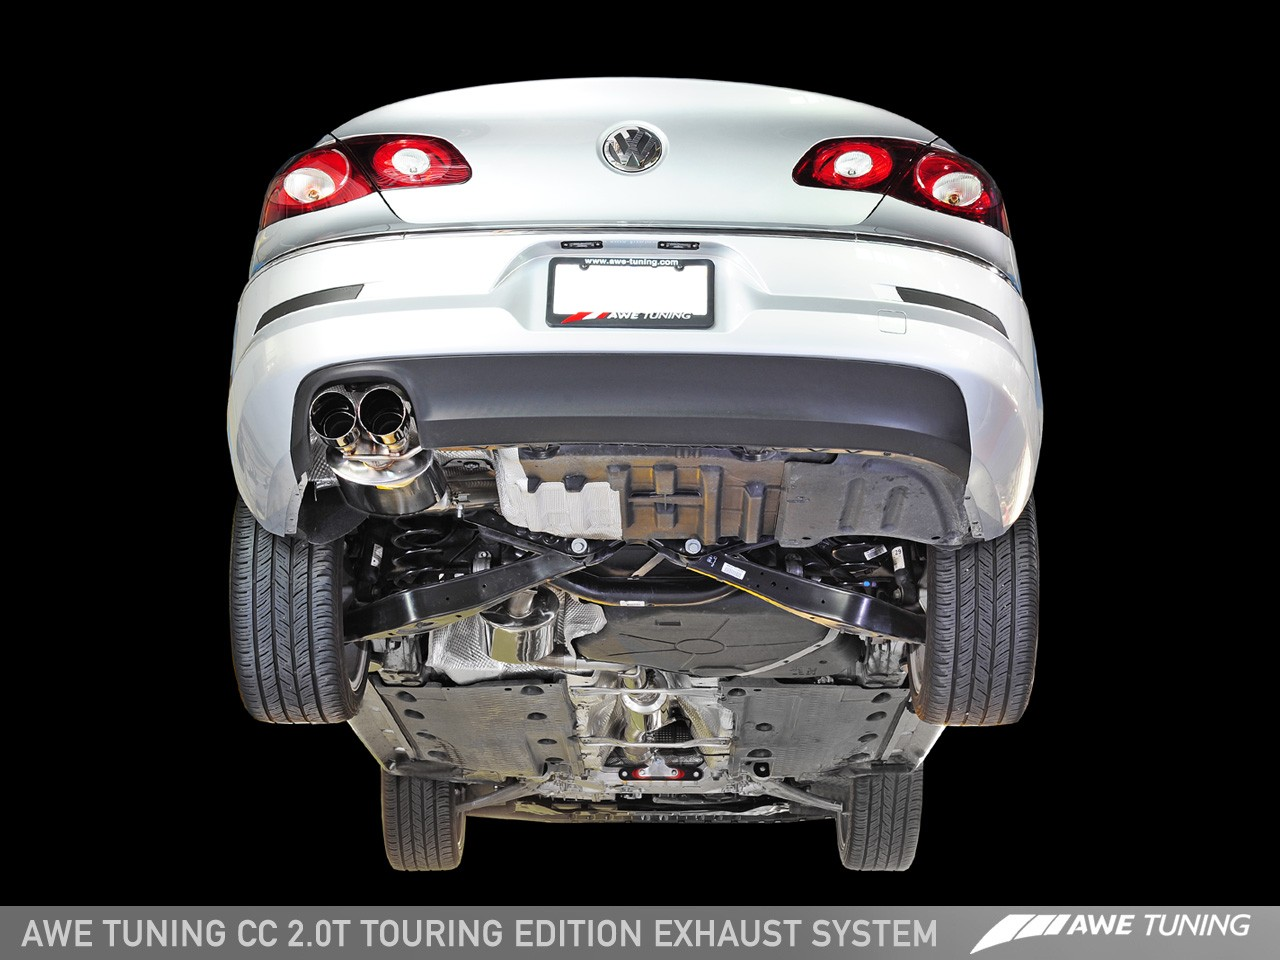 2007 Vw Gti Engine Diagram Awe Tuning Vw Cc 2 0t Touring Edition Exhaust System Awe